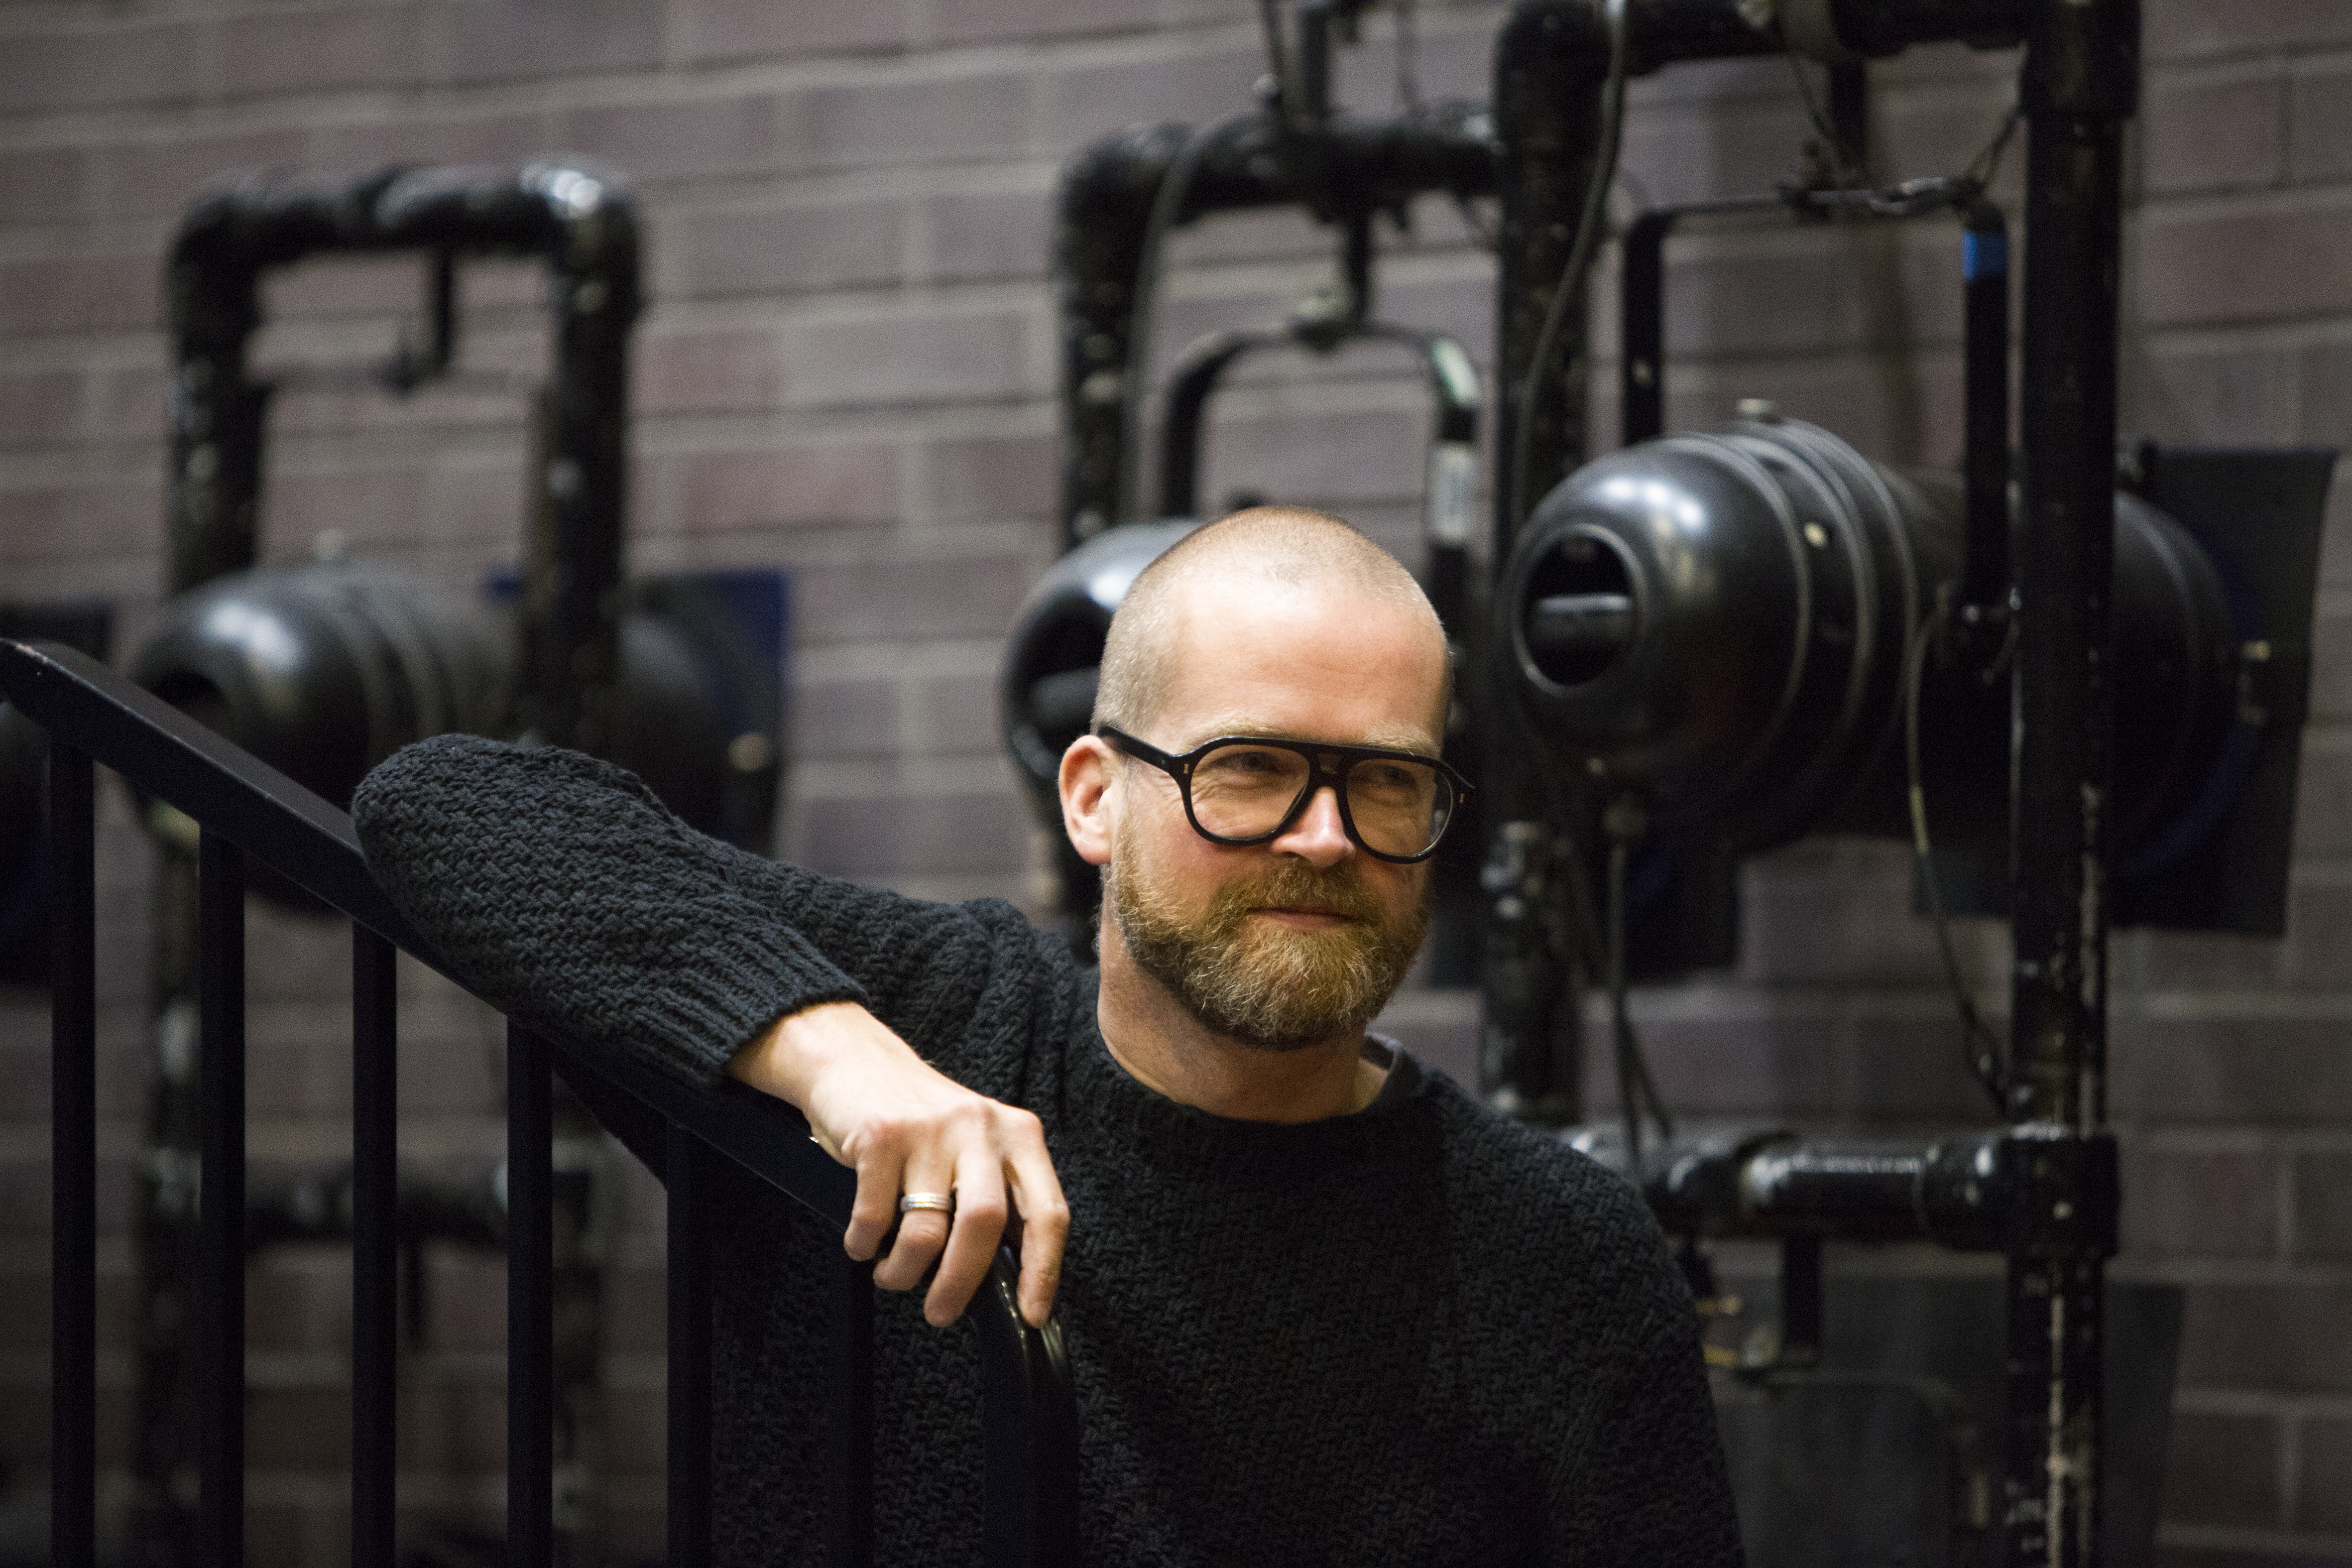 Nicolai Hart-Handsen leaning on a stair railing. Behind him is theatre technical equipment. He is wearing big, thick rimmed glasses and has a short beard.